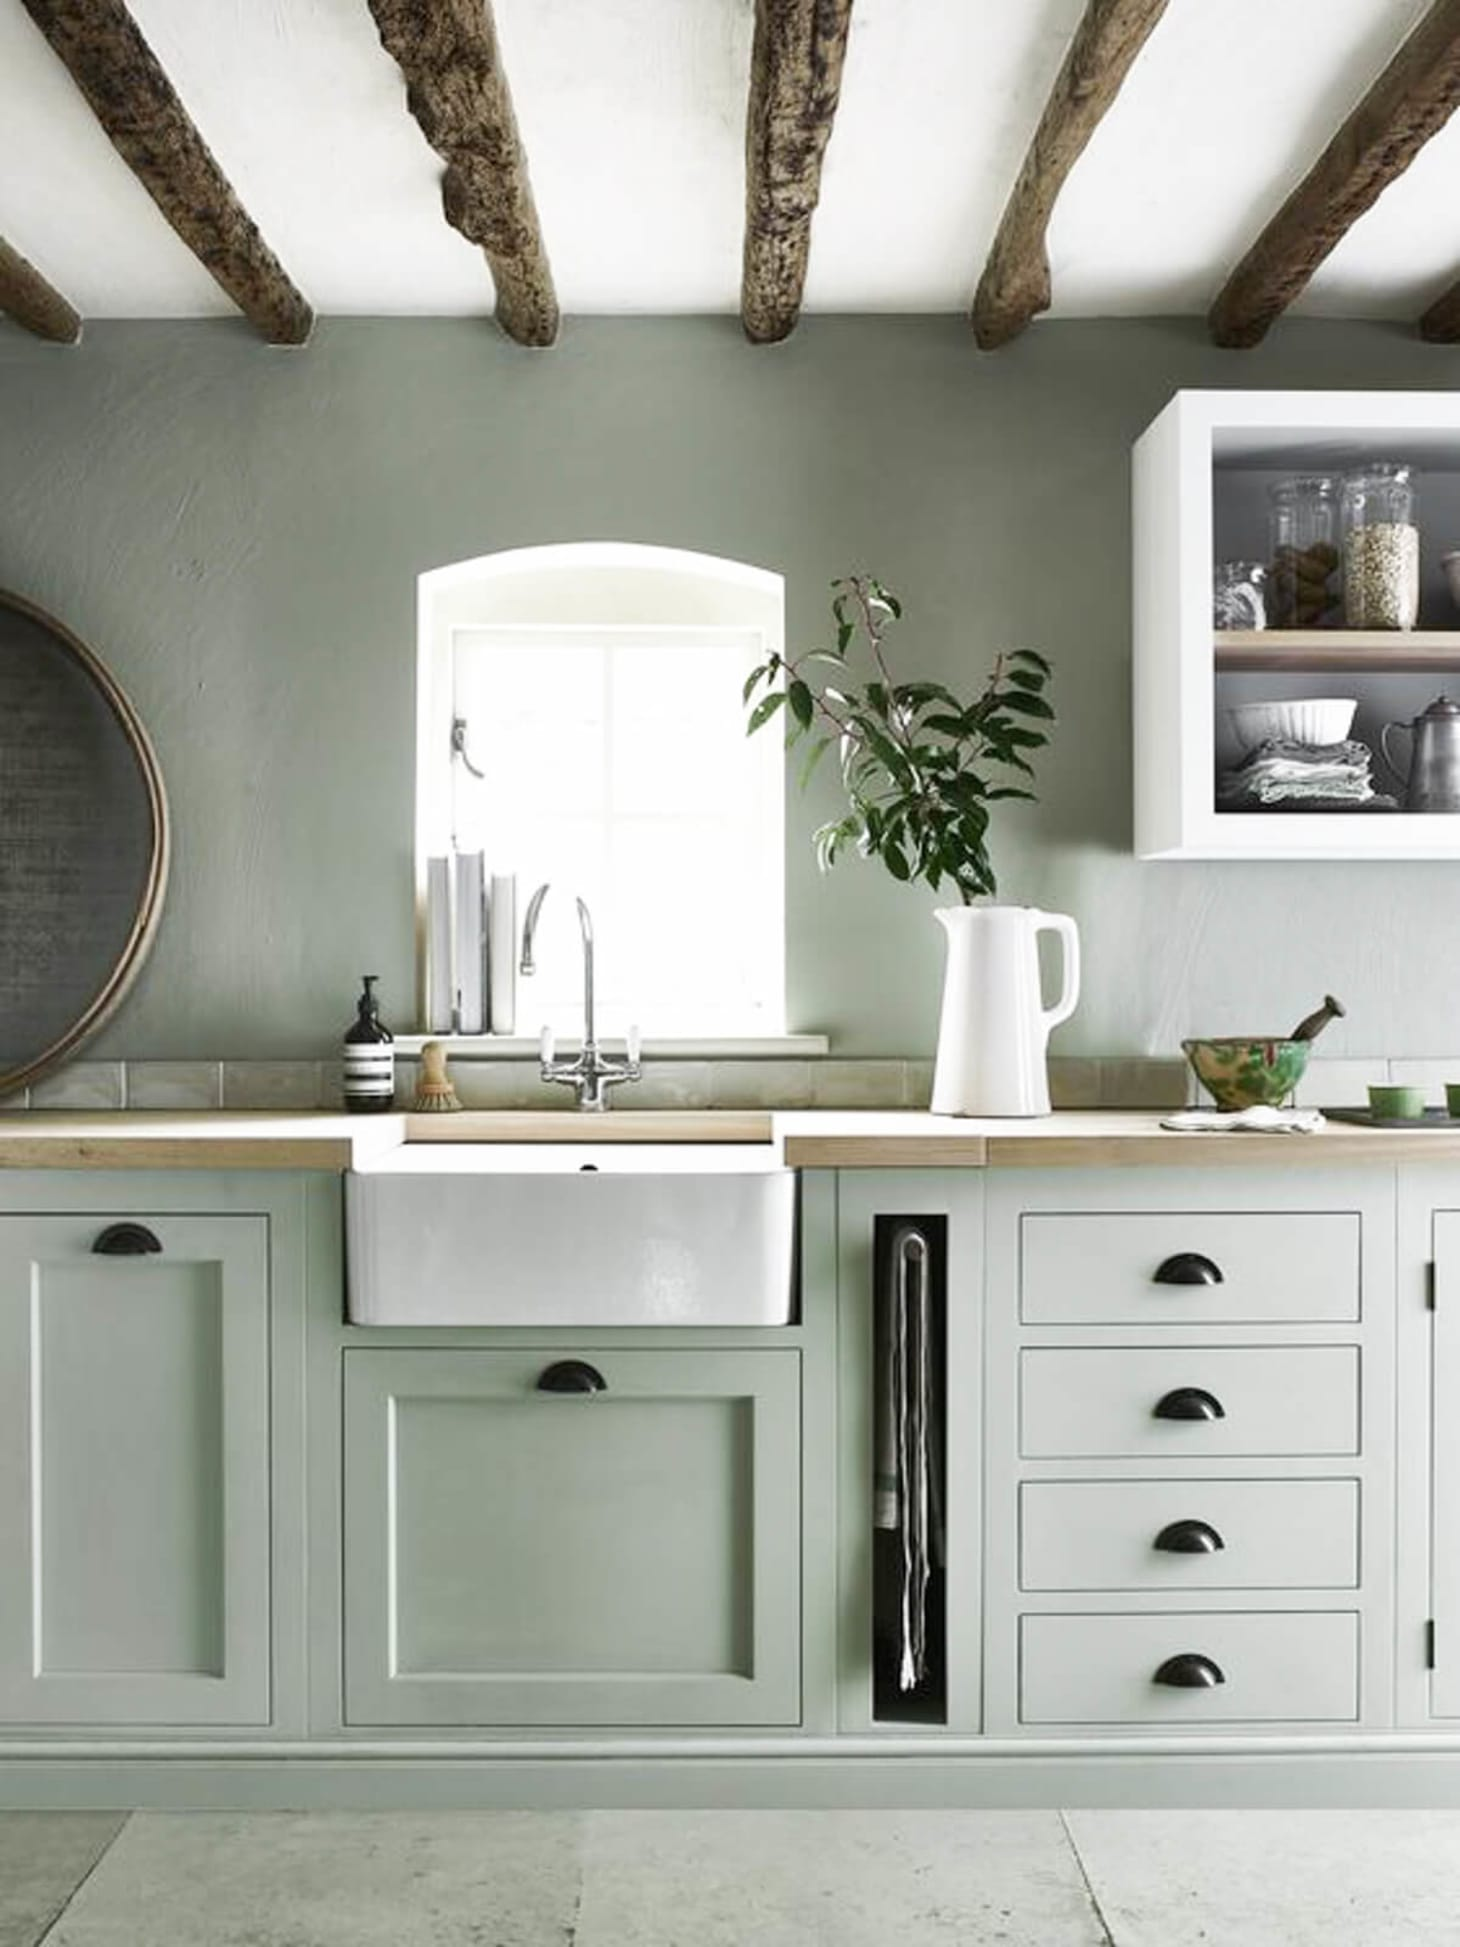 amusing green kitchen paint colors white cabinets | 2018 Paint Trends - Kitchen Cabinet Color Predictions ...